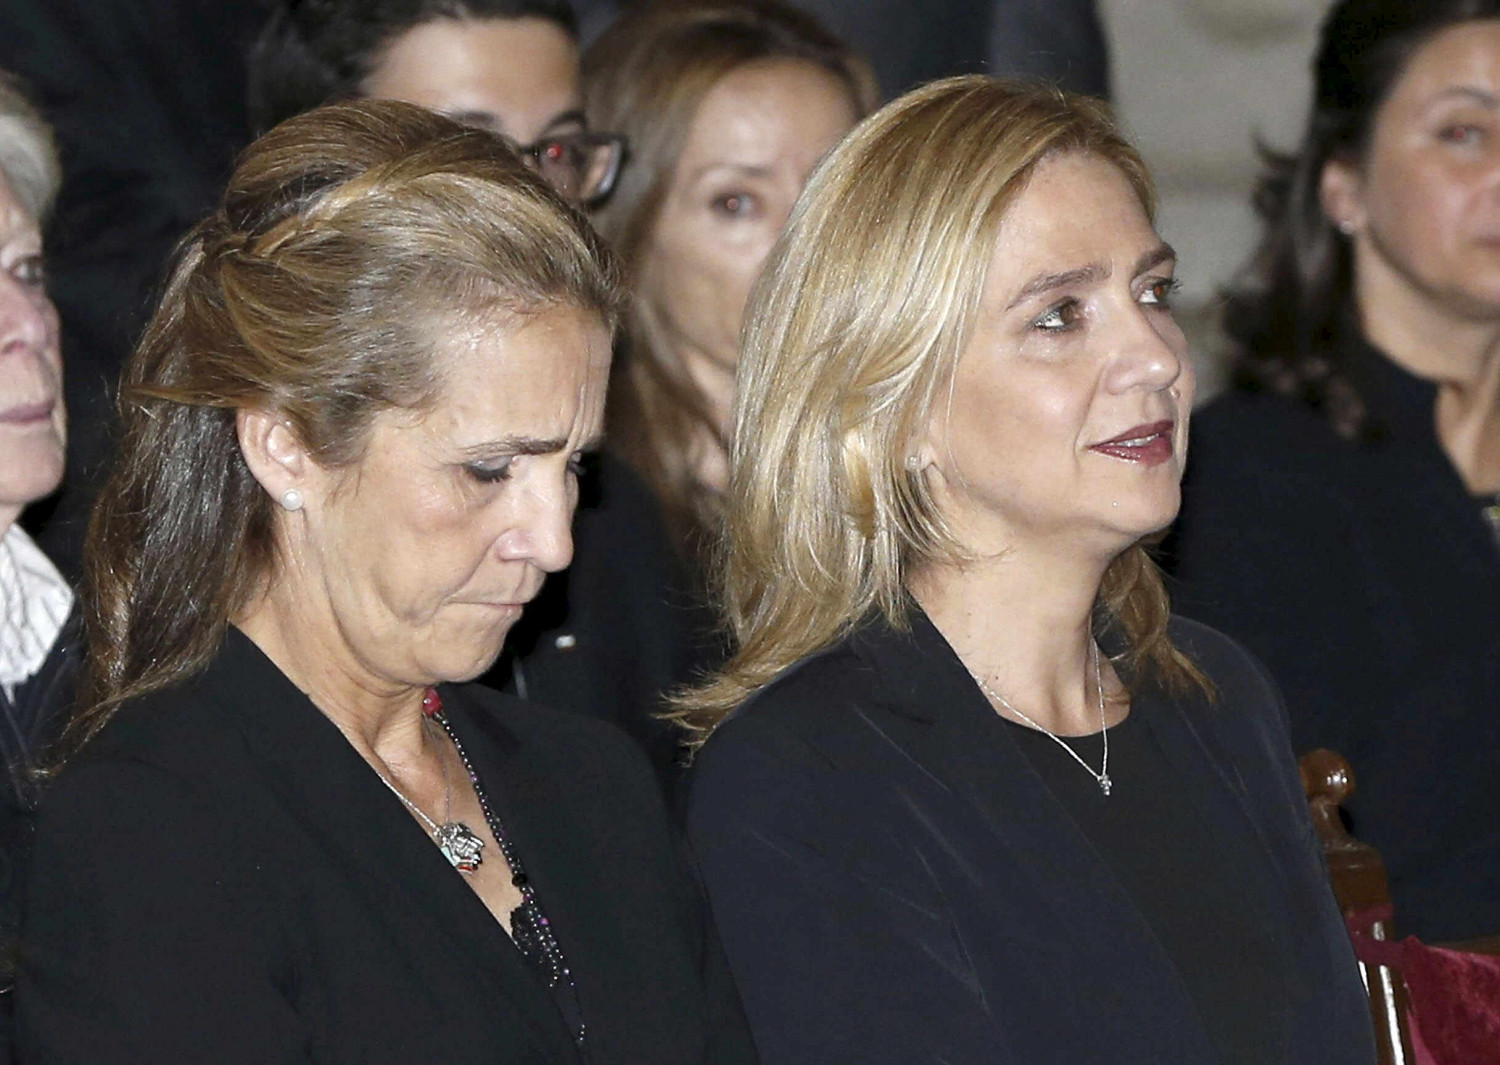 Cristina de Borbon (R) and her sister Elena, the sisters of Spanish King Felipe, attend a funeral service in San Lorenzo de El Escorial, near Madrid, Spain, October 8, 2015 (by REUTERS/Juan Carlos Hidalgo)